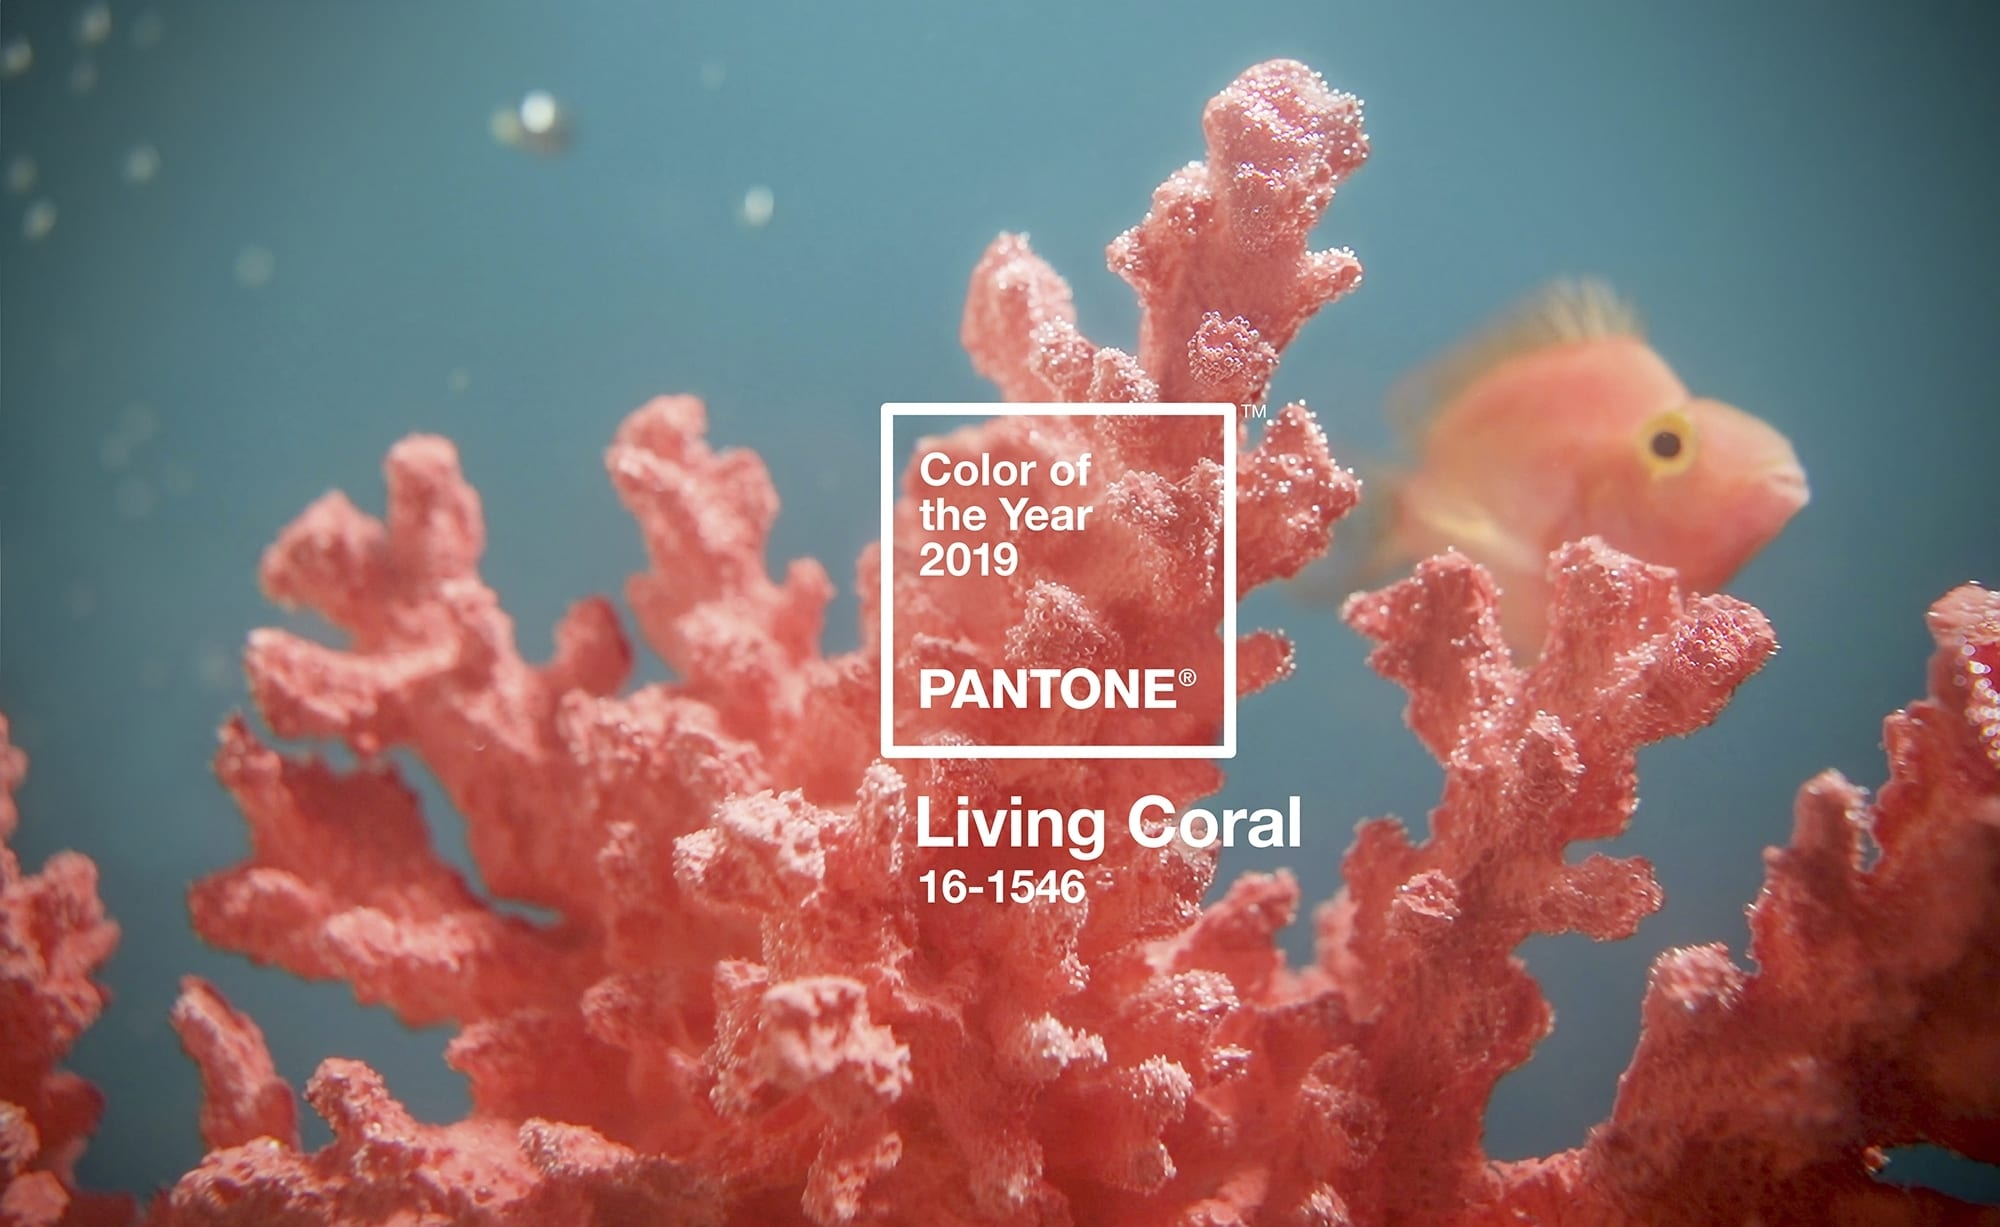 pantone color of the year 2019 living coral - PANTONE – barvou roku 2019 je Living Coral